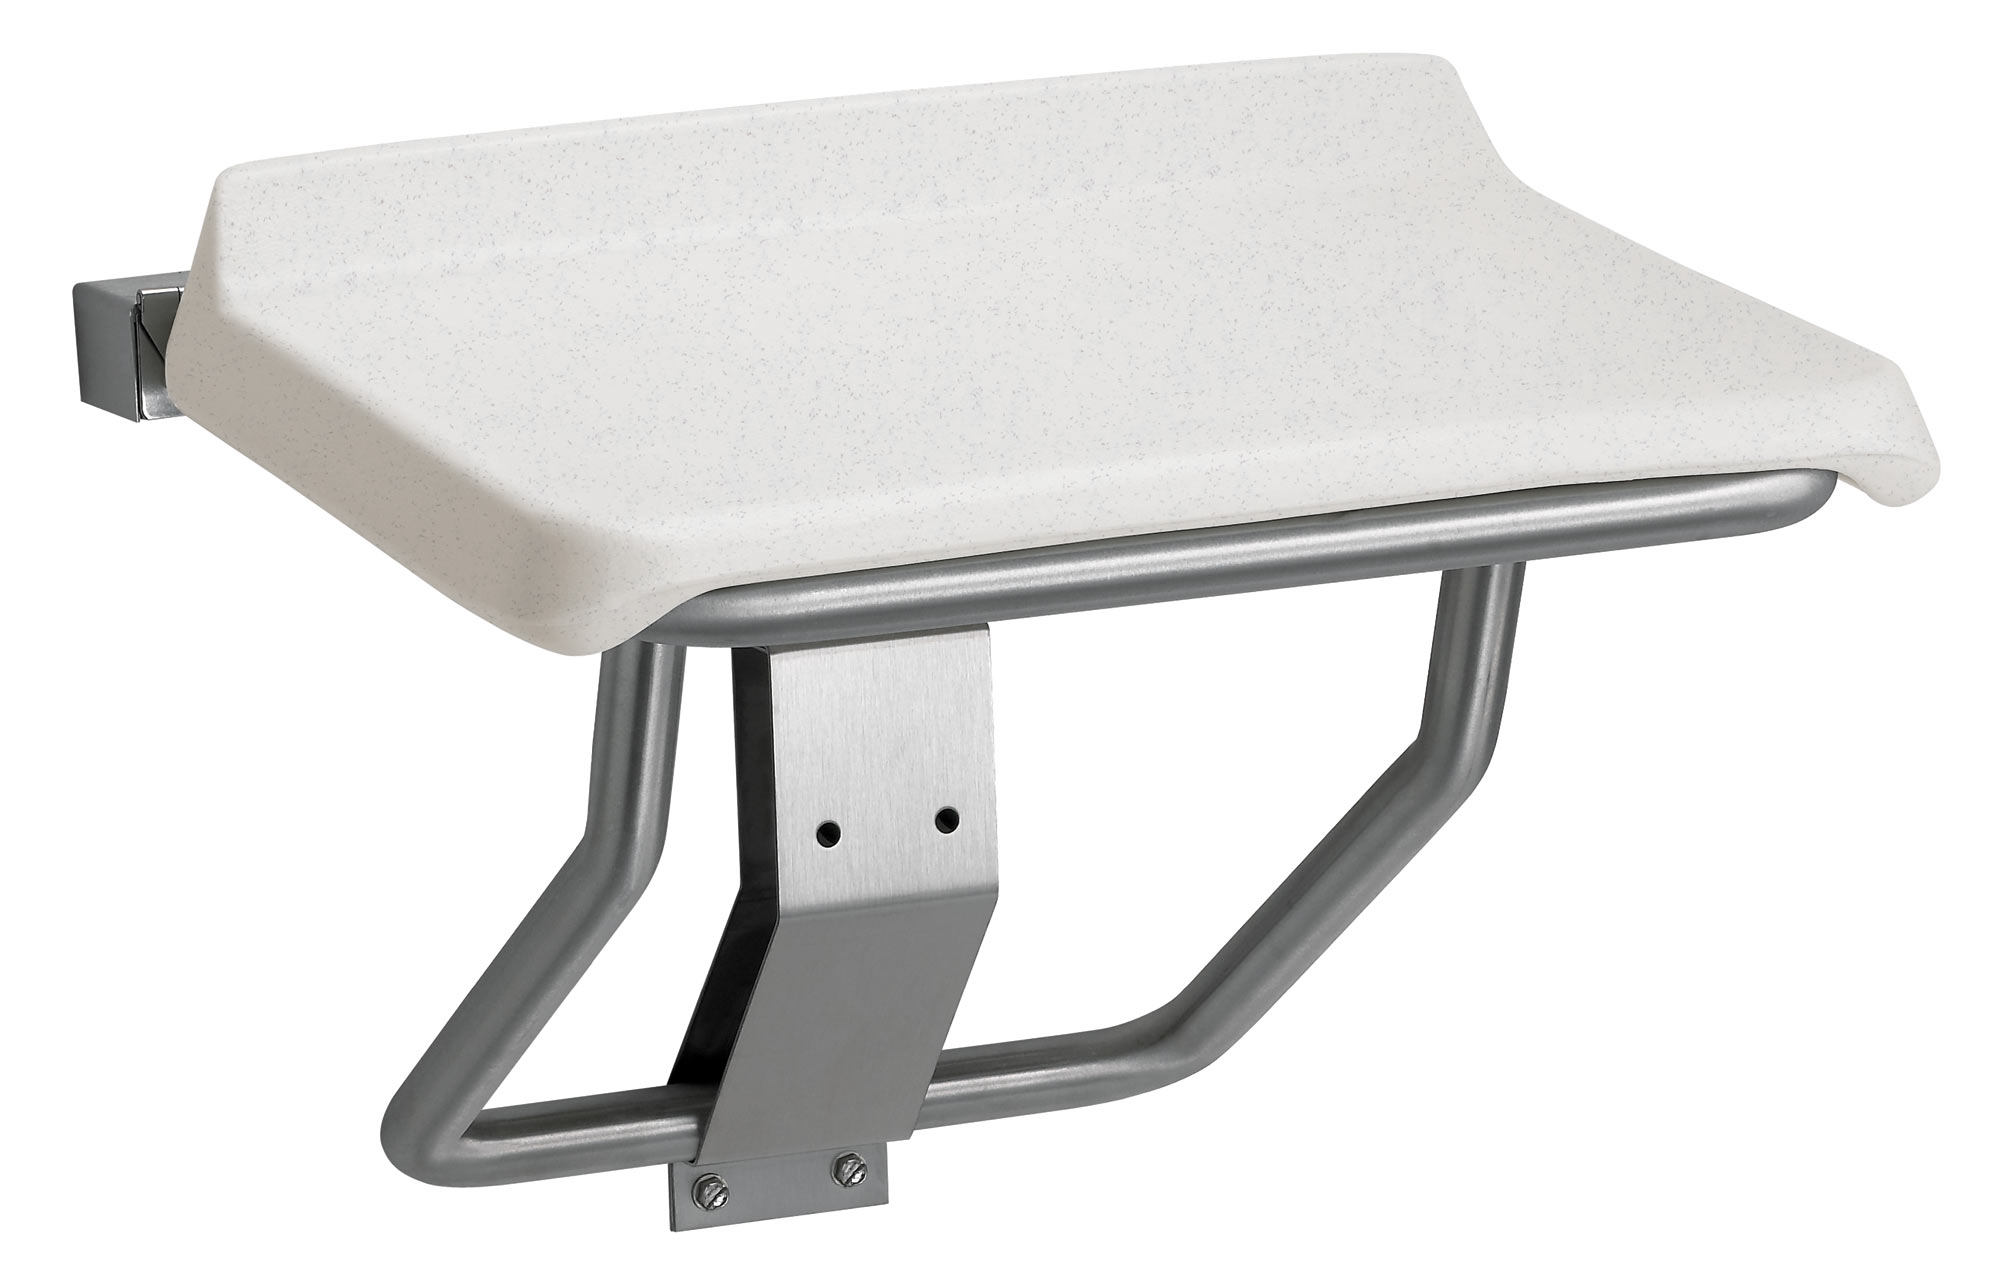 Antimicrobial Molded Plastic Folding Shower Seat - Bradley Corporation